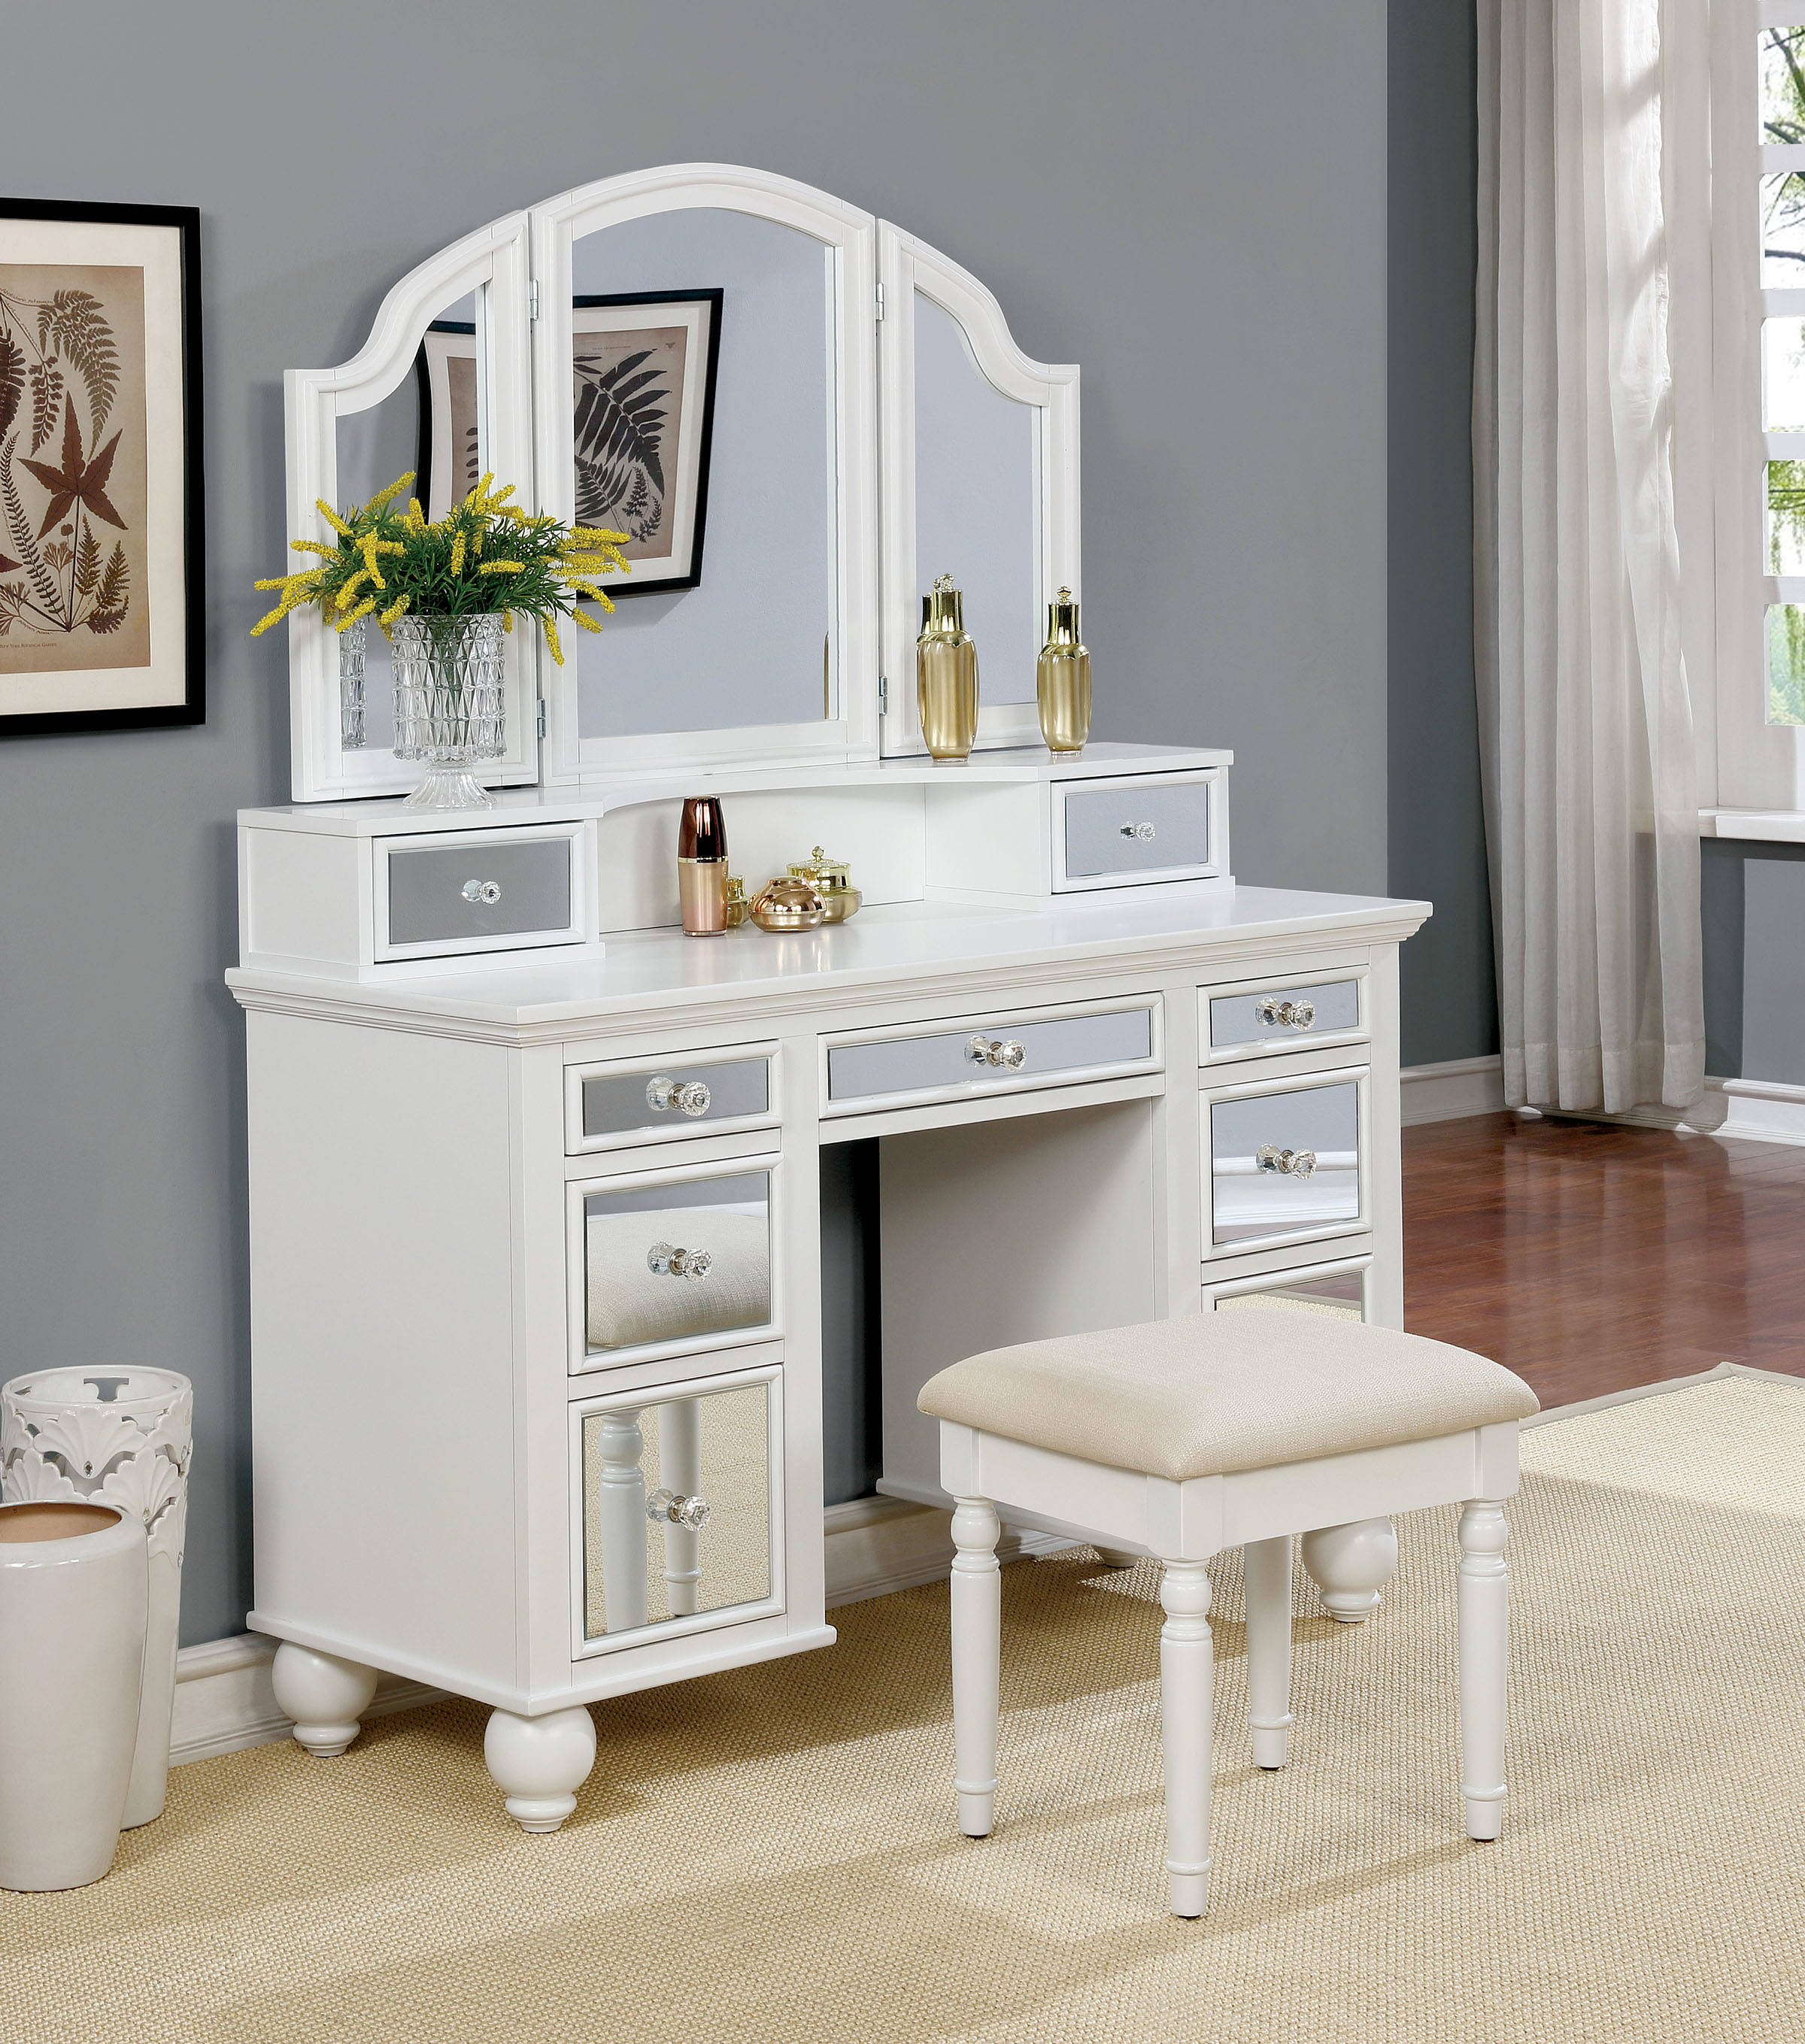 Furniture of America Tracy White Vanity with Stool | The ...